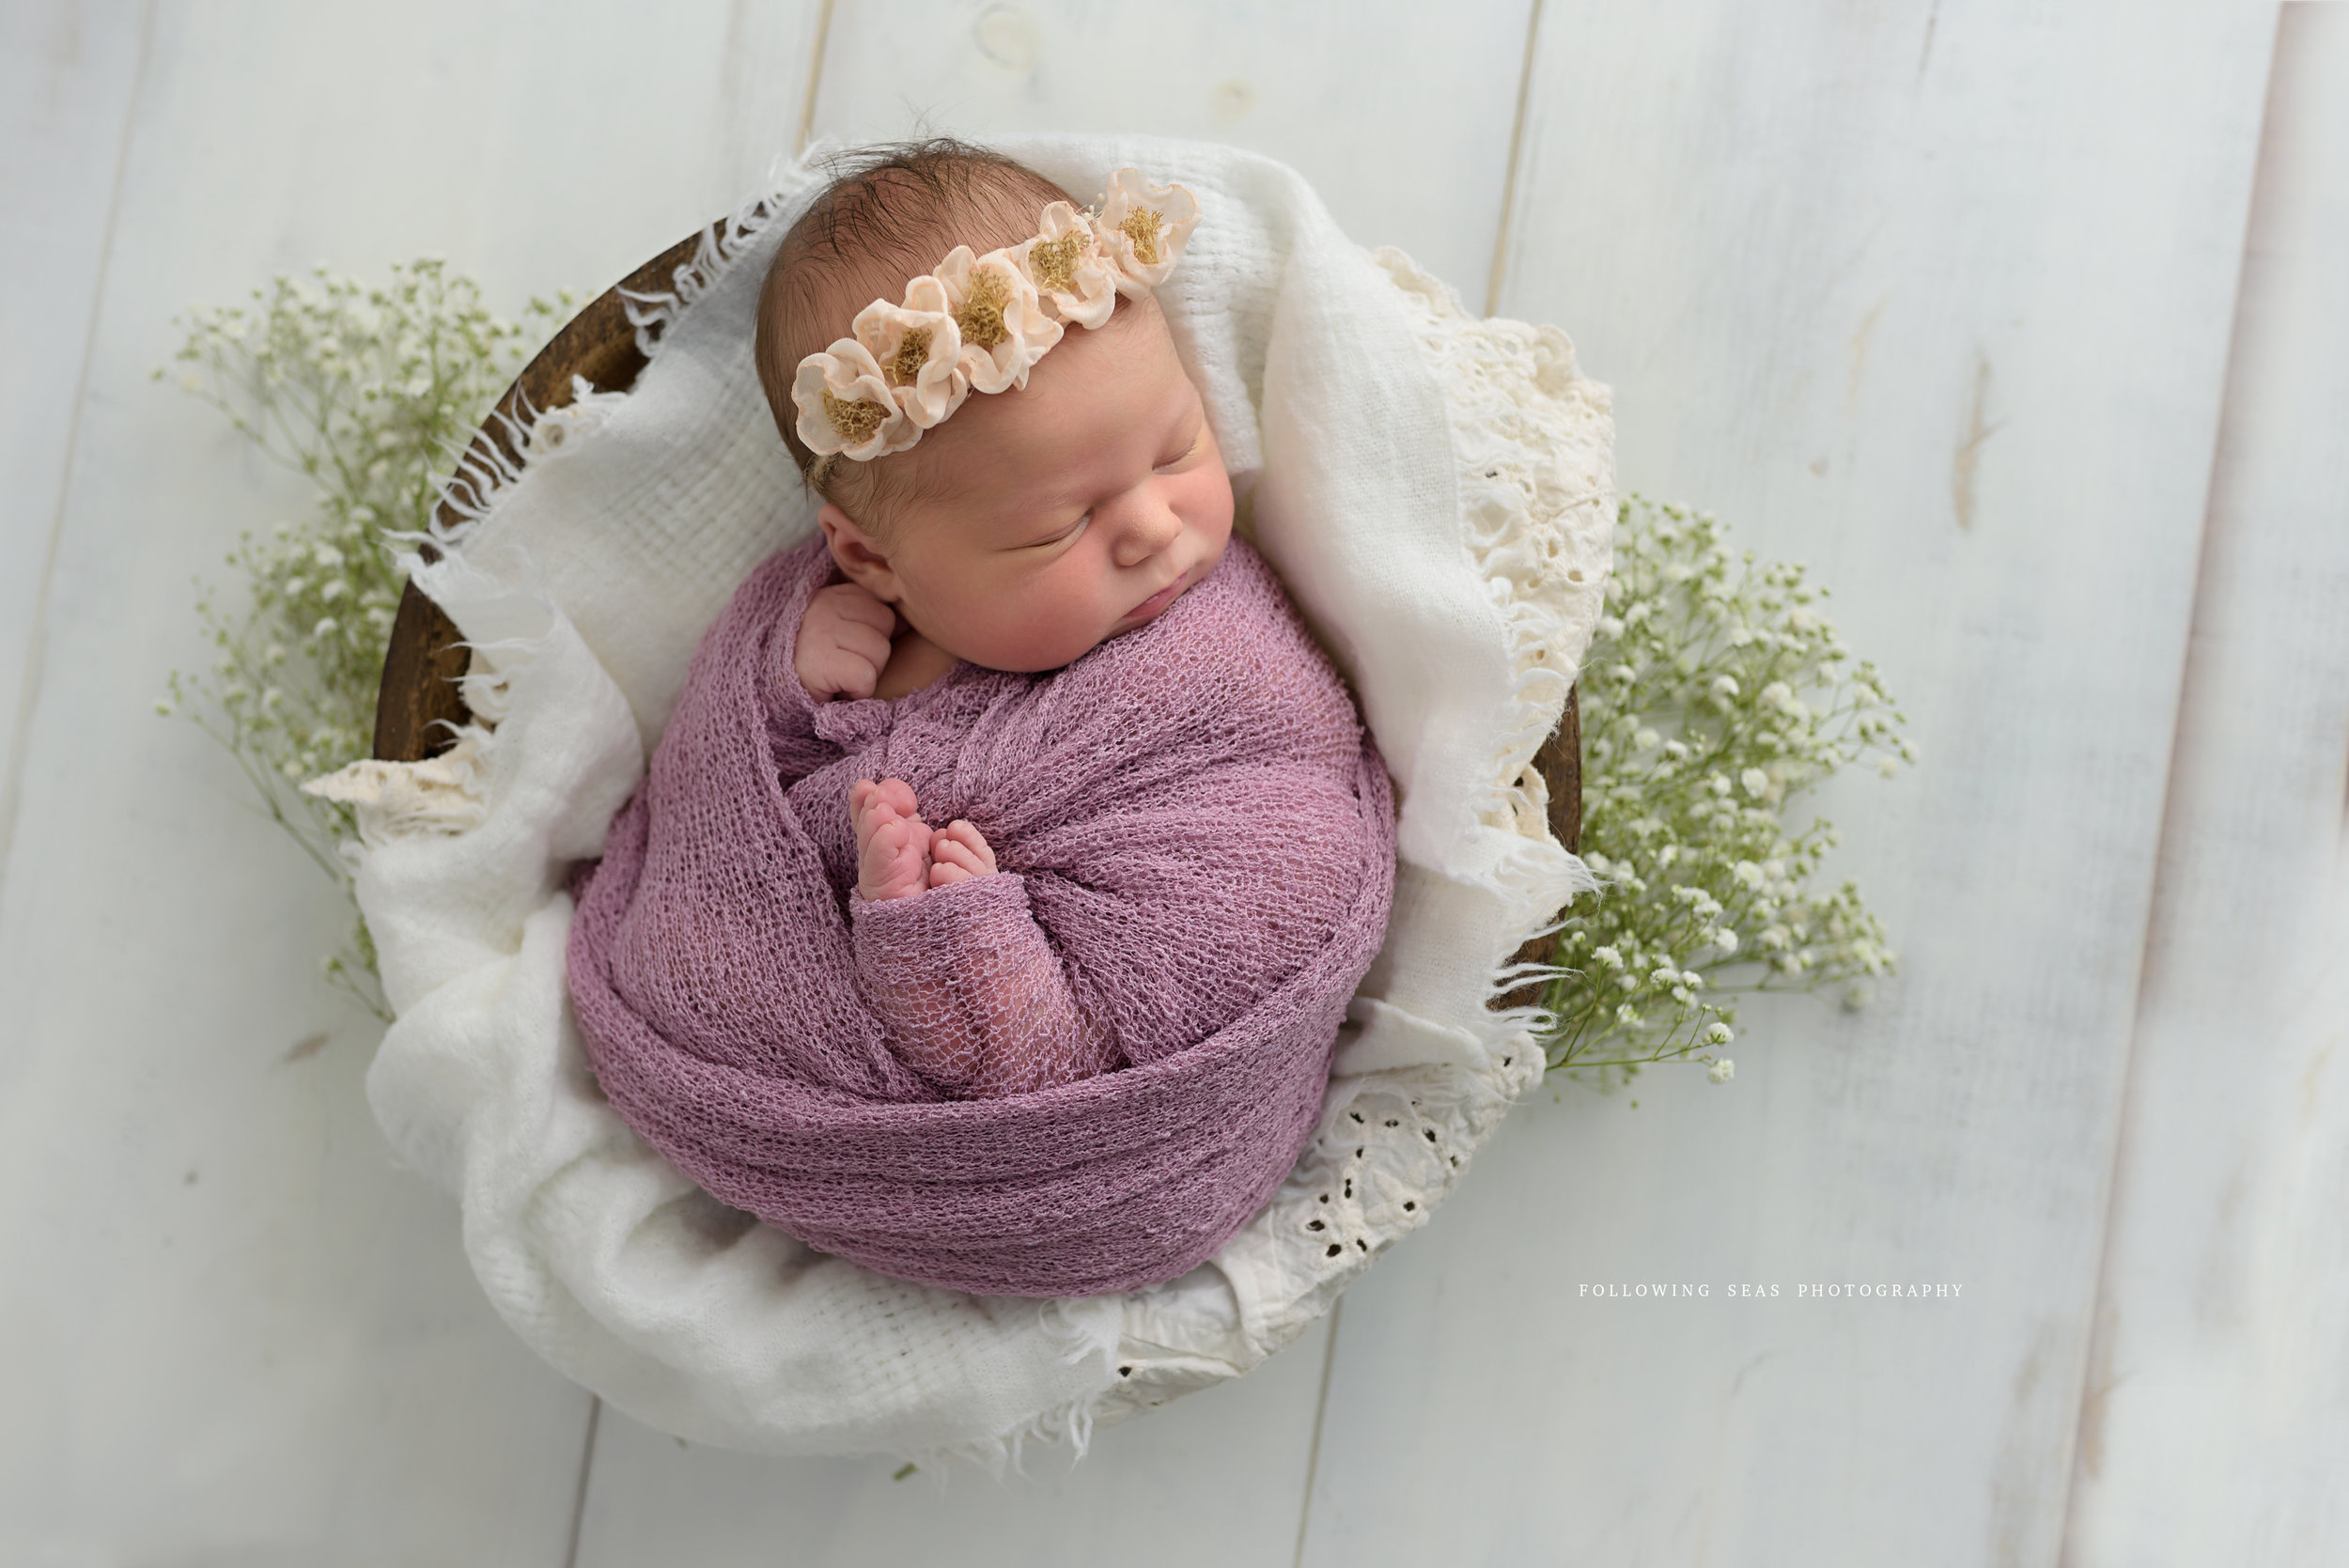 Charleston-Newborn-Photographer-Following-Seas-Photography-5278.jpg